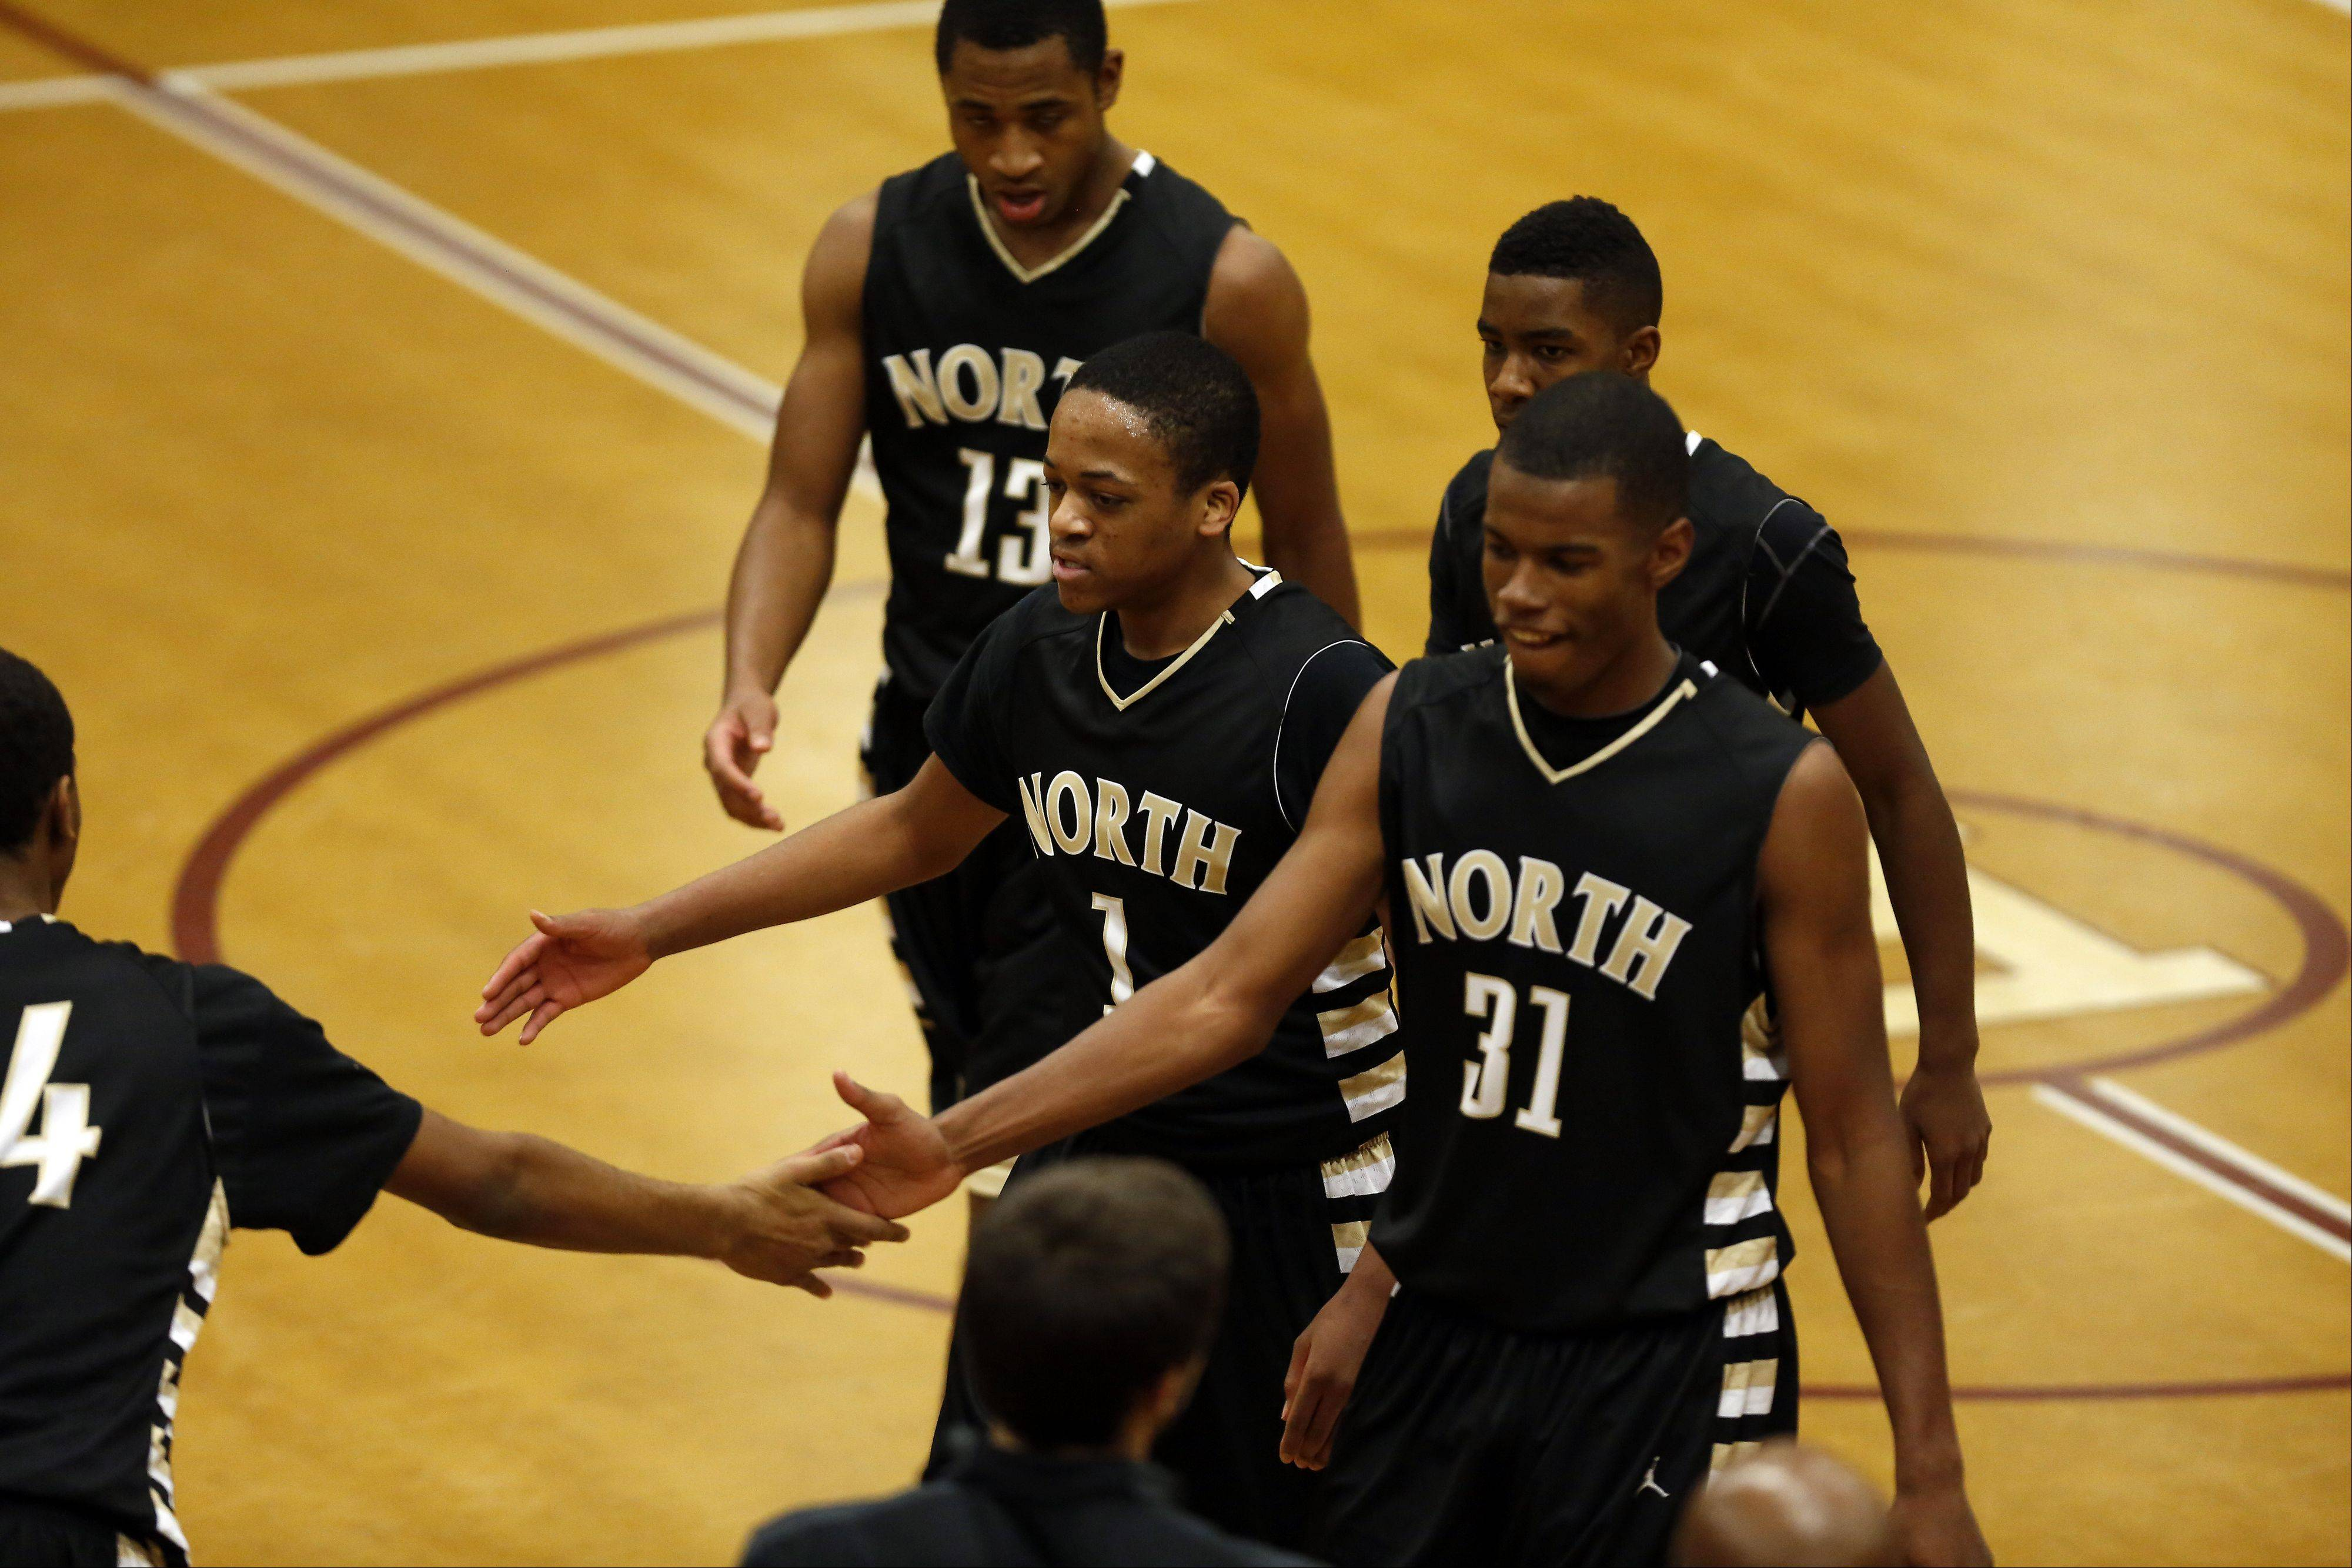 Glenbard North�s Jeremiah Fleming, center, and Chip Flanigan, right, leave the court at the end of the third quarter against Elgin at the 39th Annual Elgin Boys Holiday Basketball Tournament at Elgin High School Saturday December 28, 2013.